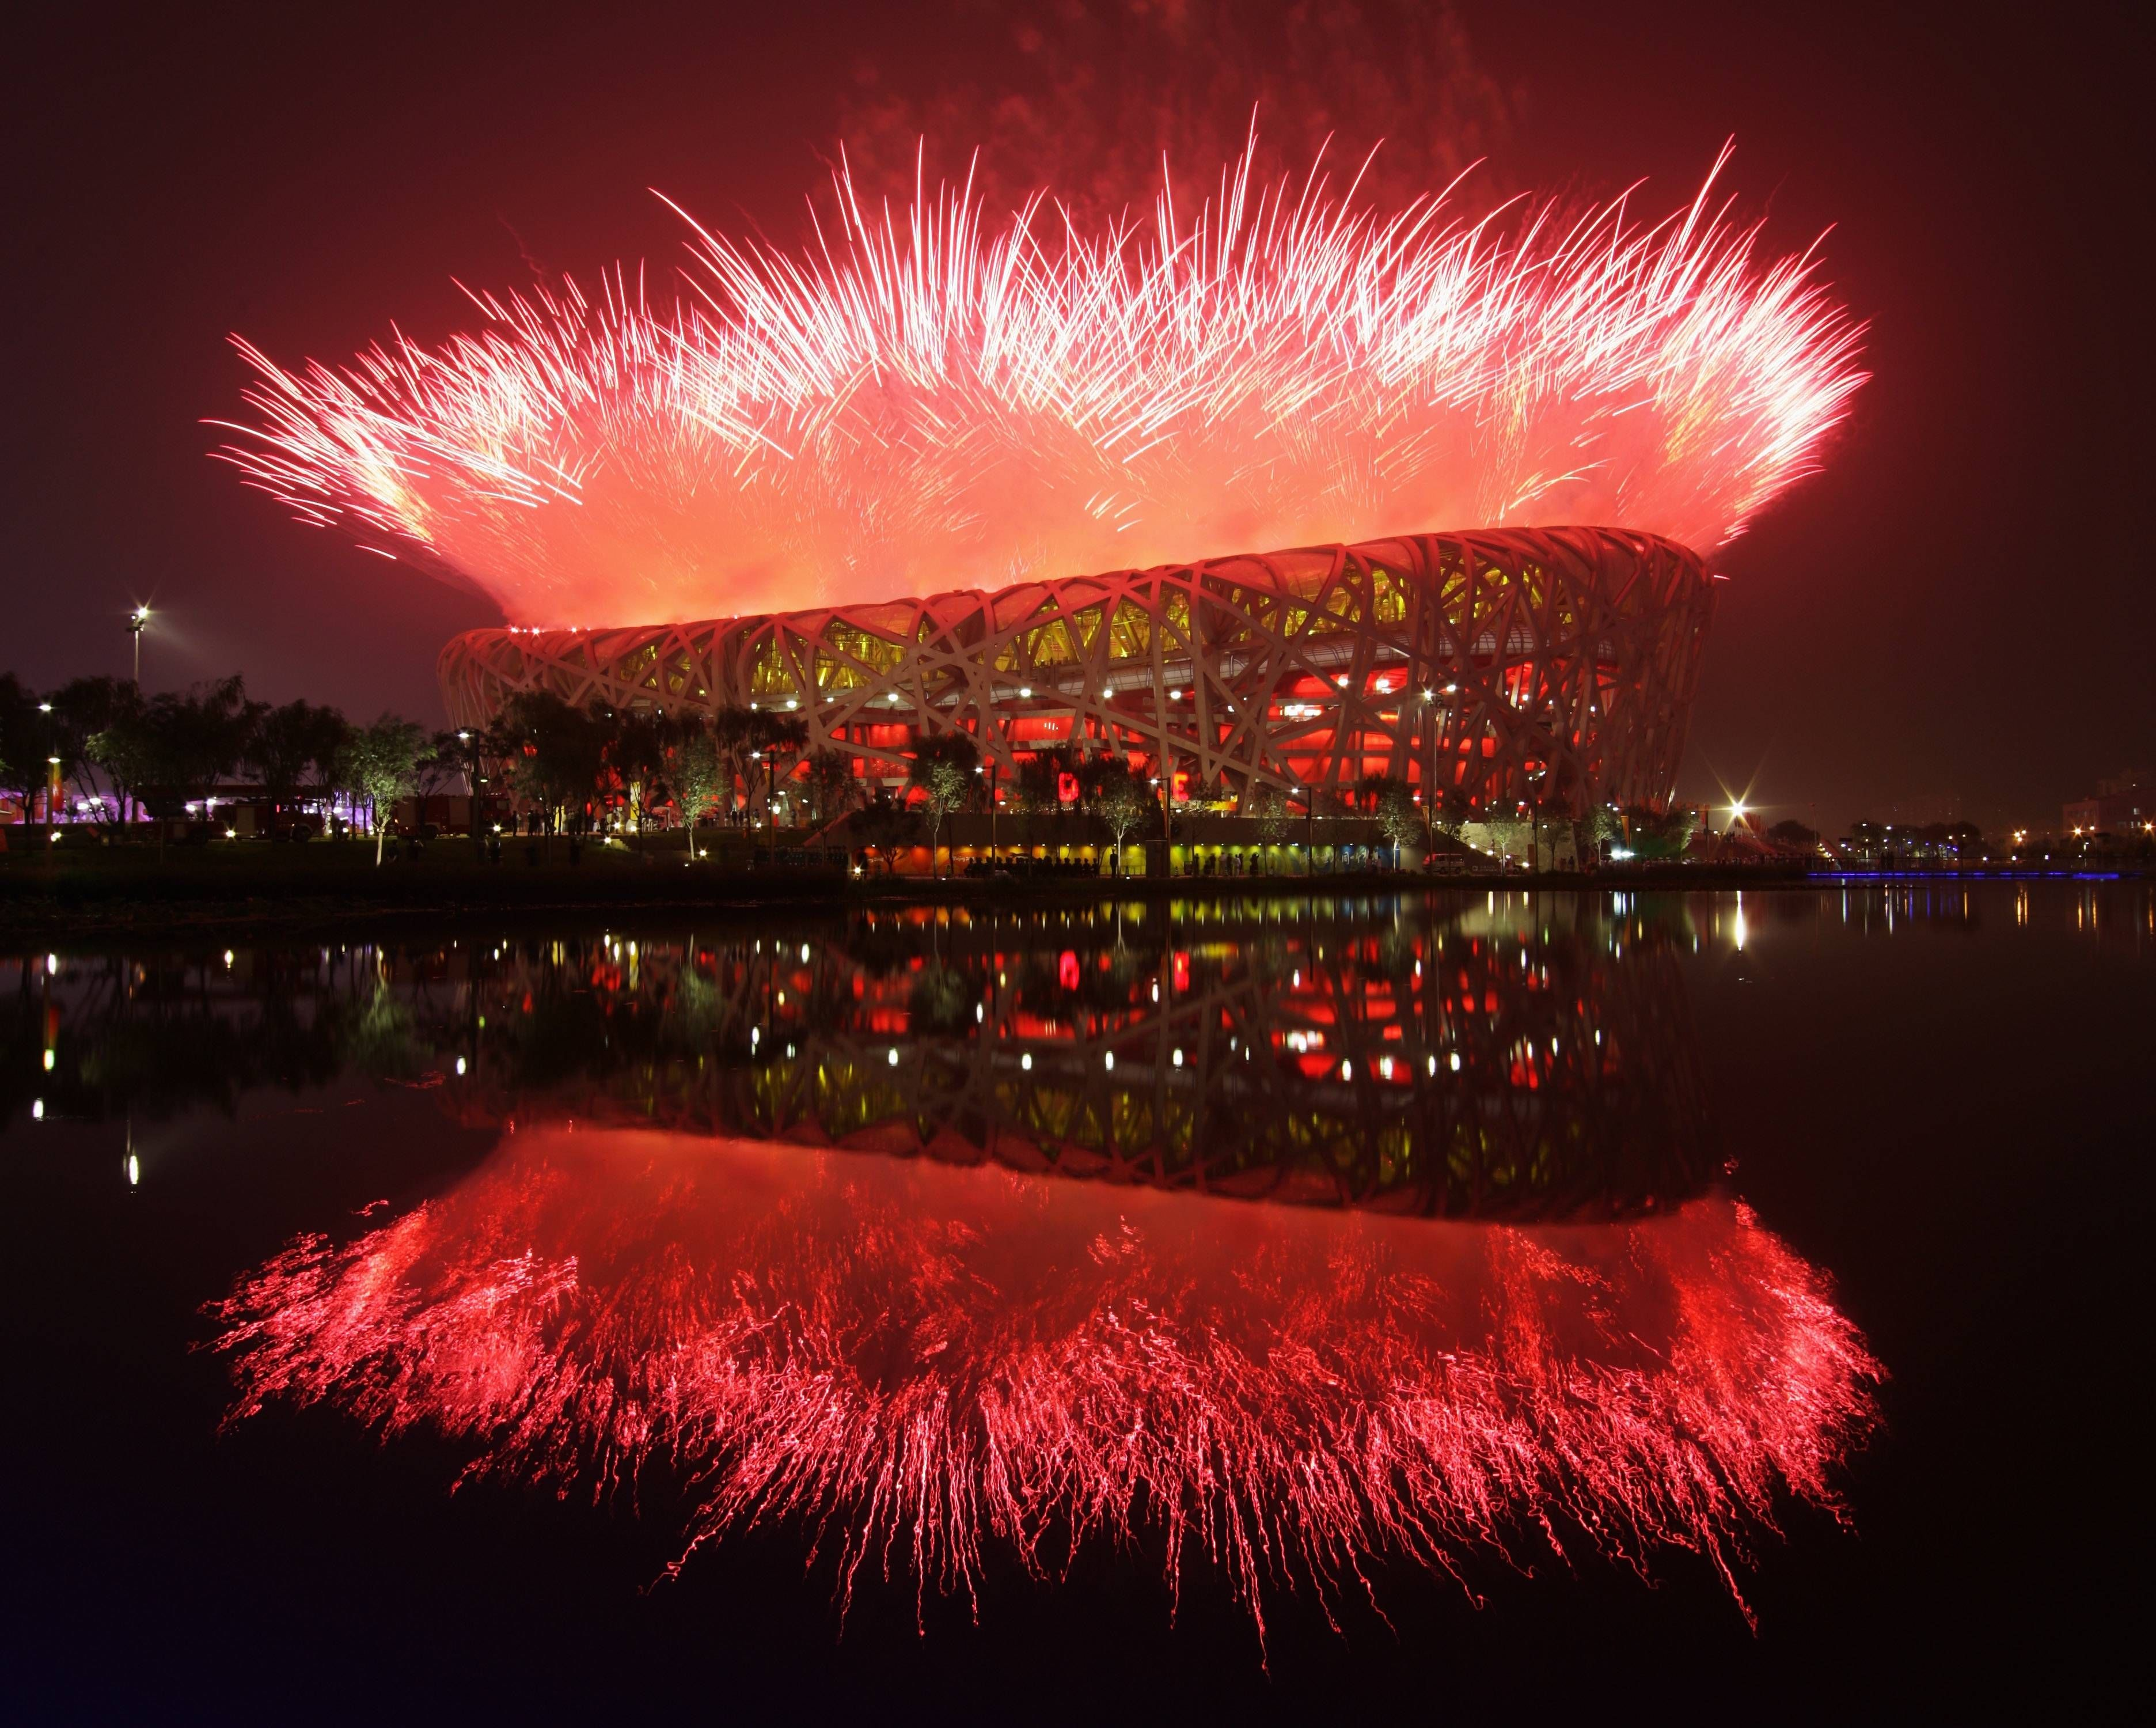 The Chinese National Stadium In Beijing The Bird S Nest Stadium Homesthetics Inspiring Ideas For Your Home Fireworks Photography Olympics Opening Ceremony Fireworks